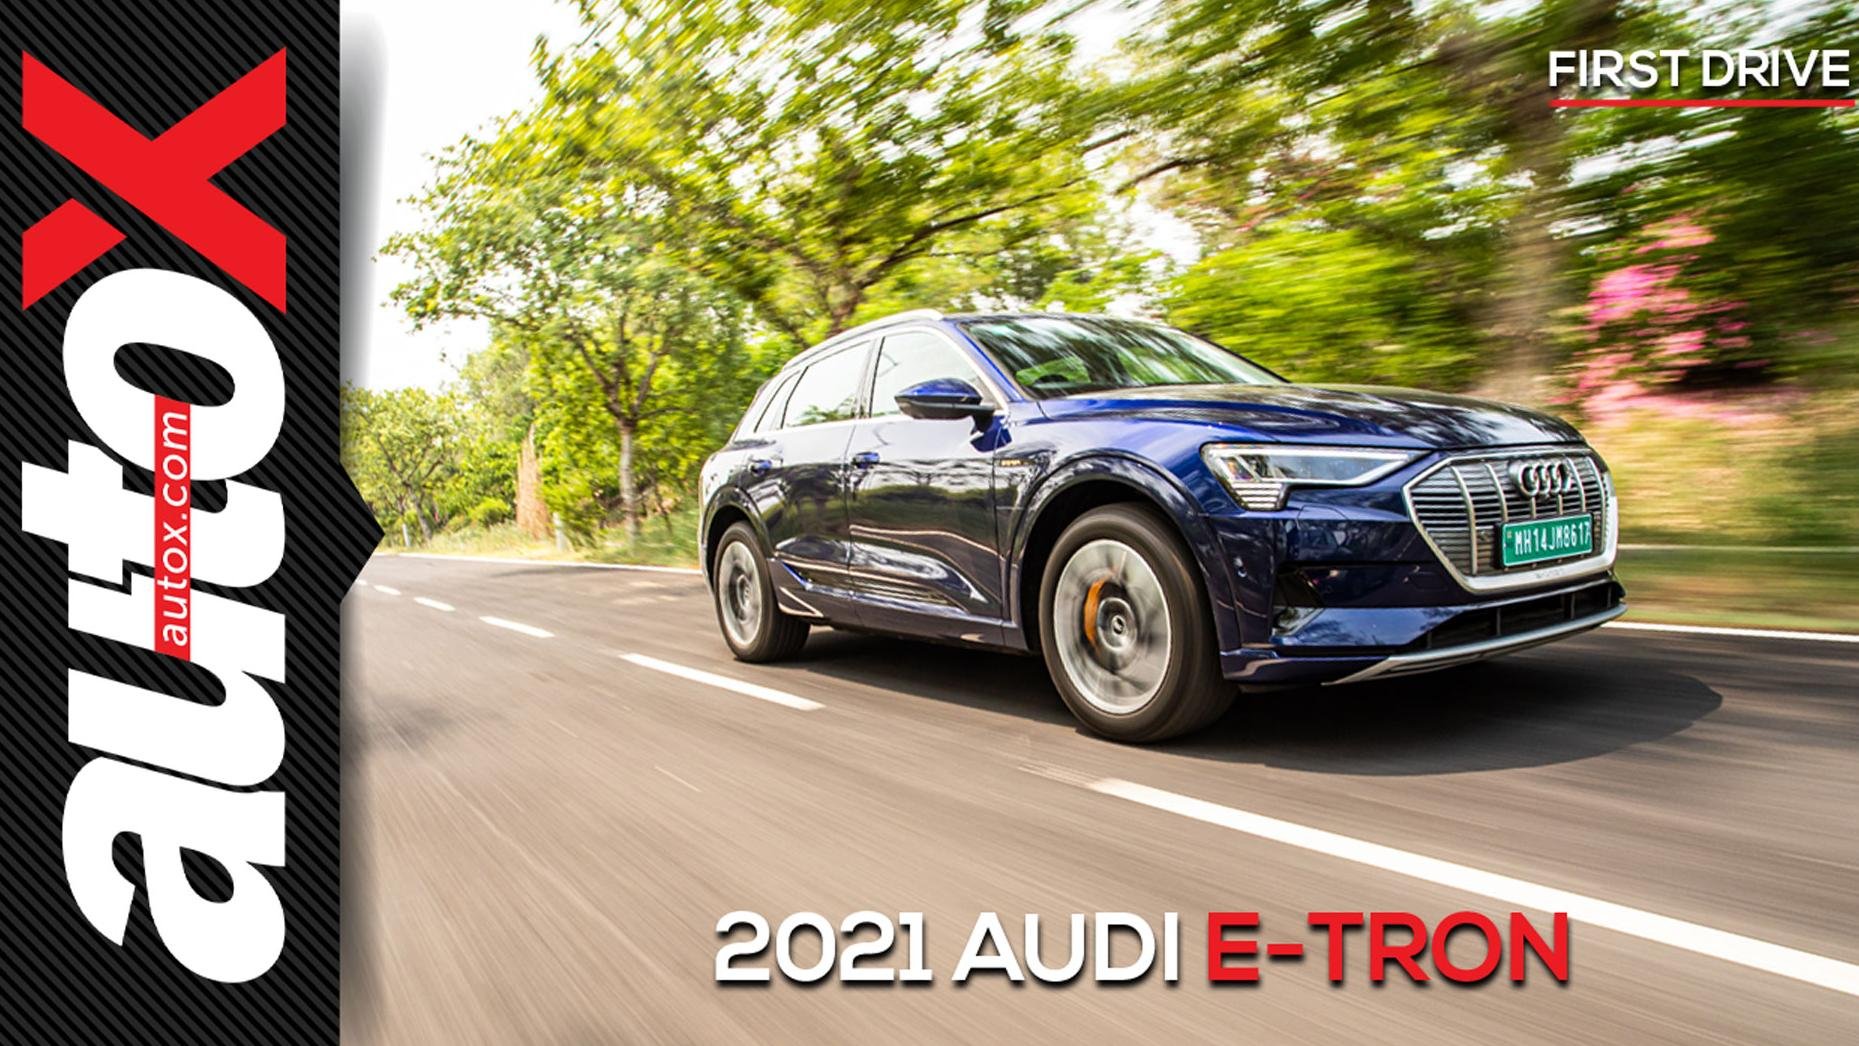 2021 Audi e-tron: A bolt from the blue | Review | autoX